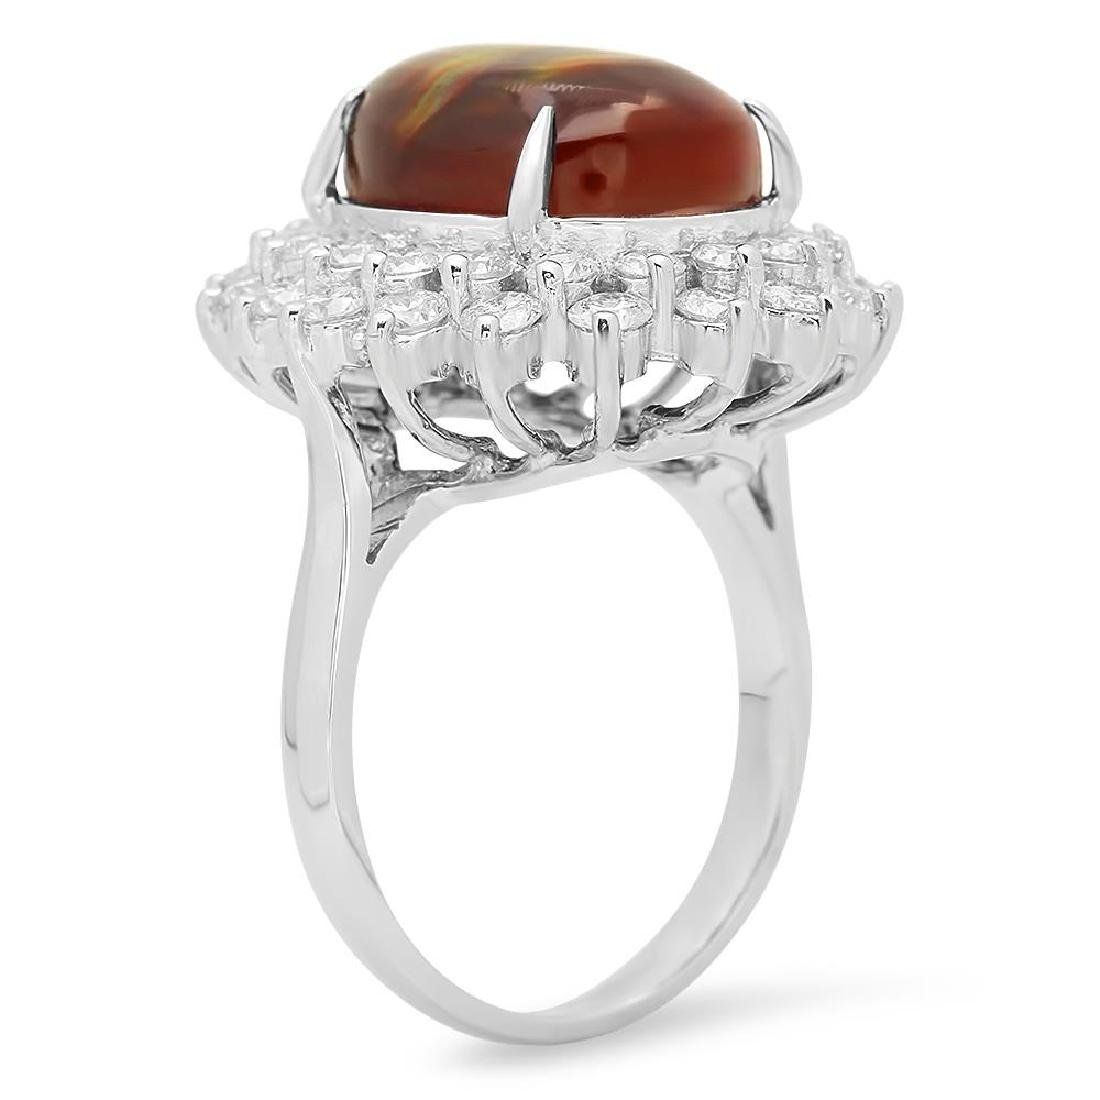 14K Gold 4.11ct Fire Agate 1.92cts Diamond Ring - 2